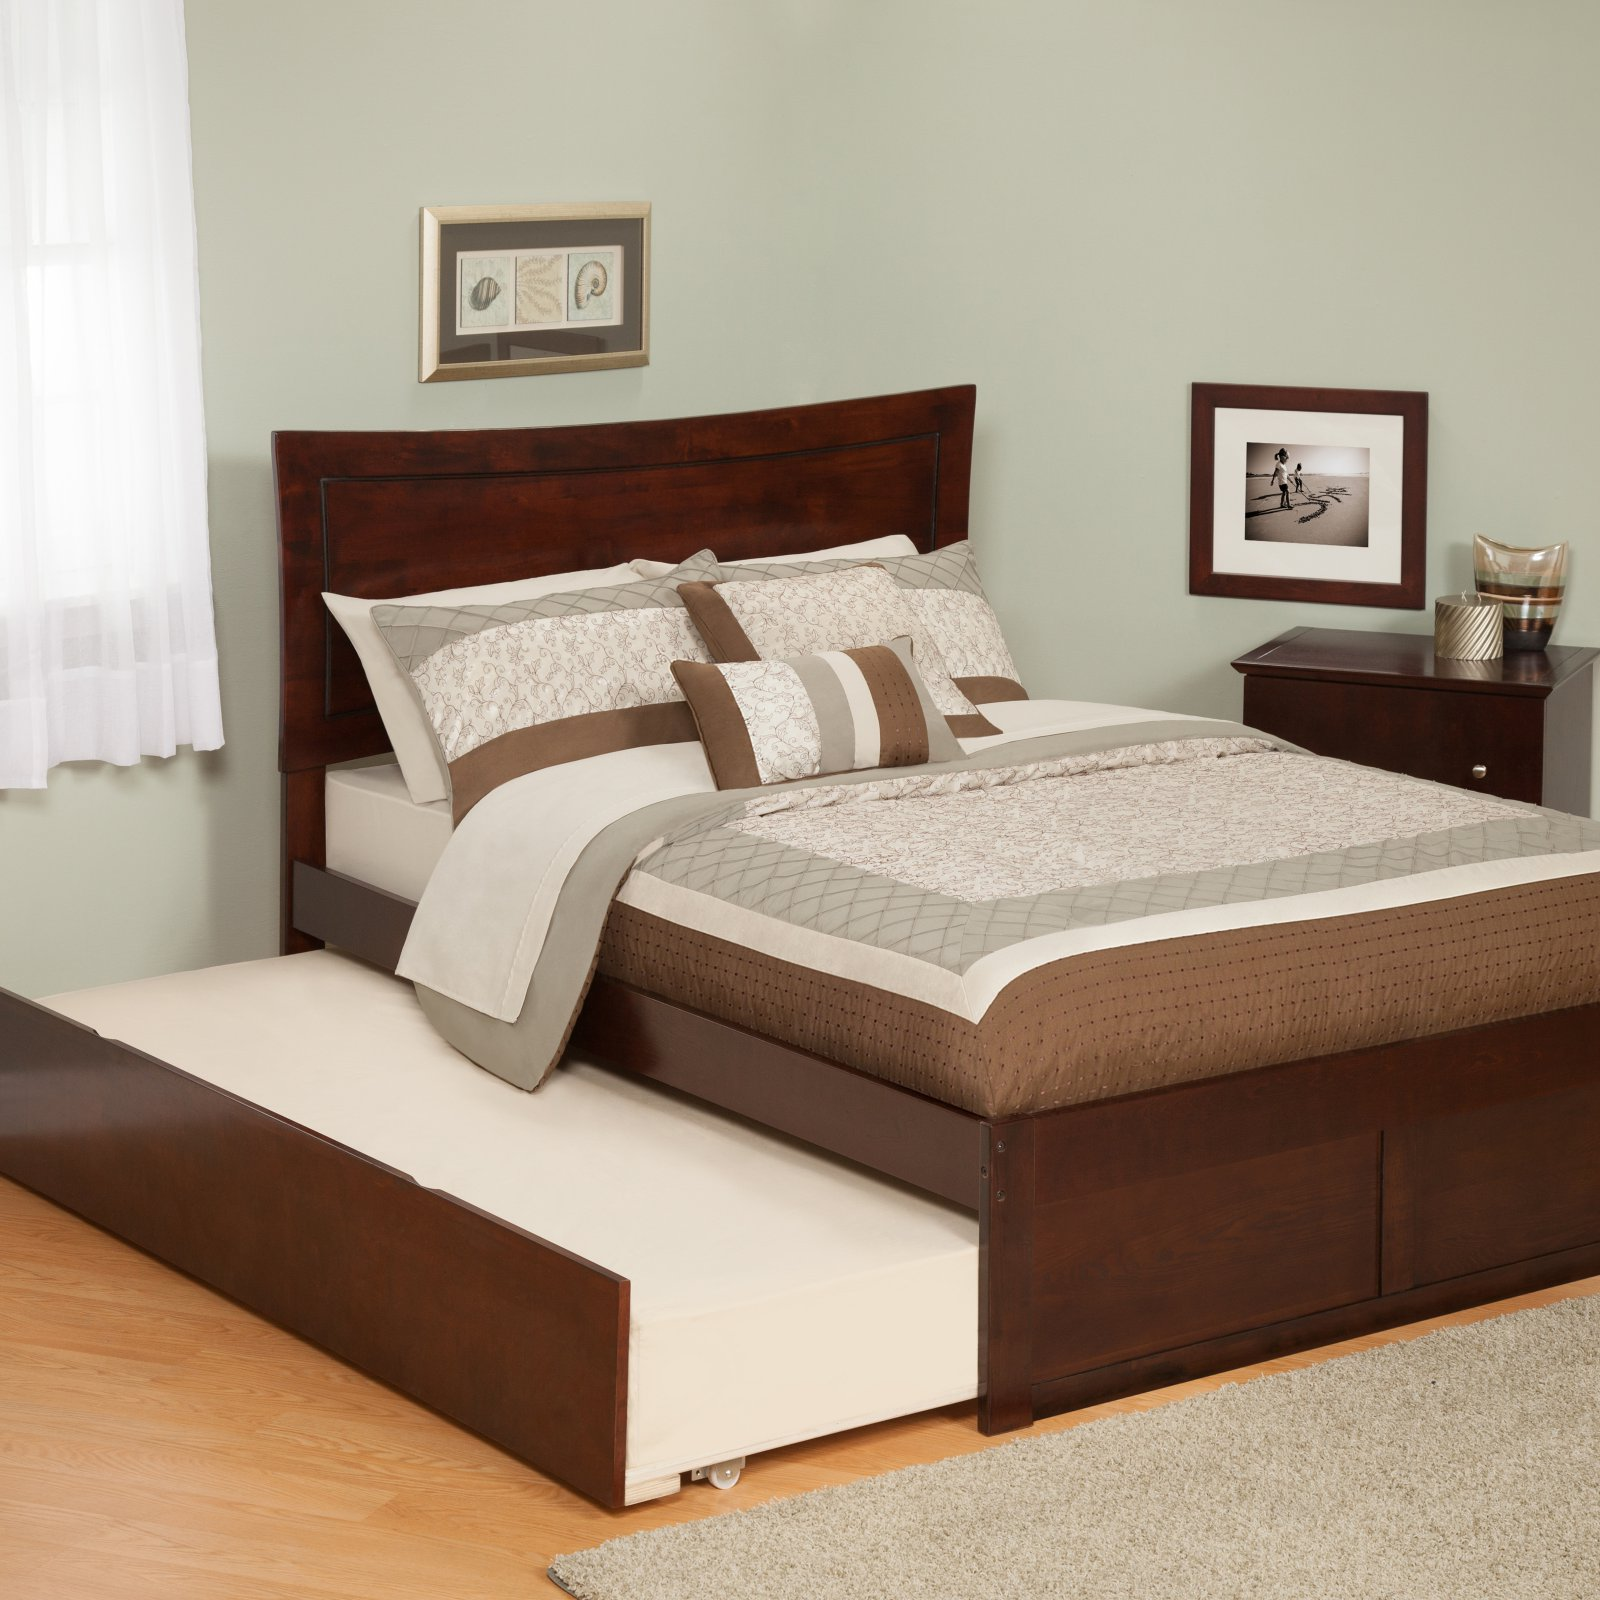 Urban Lifestyle Metro Platform Bed